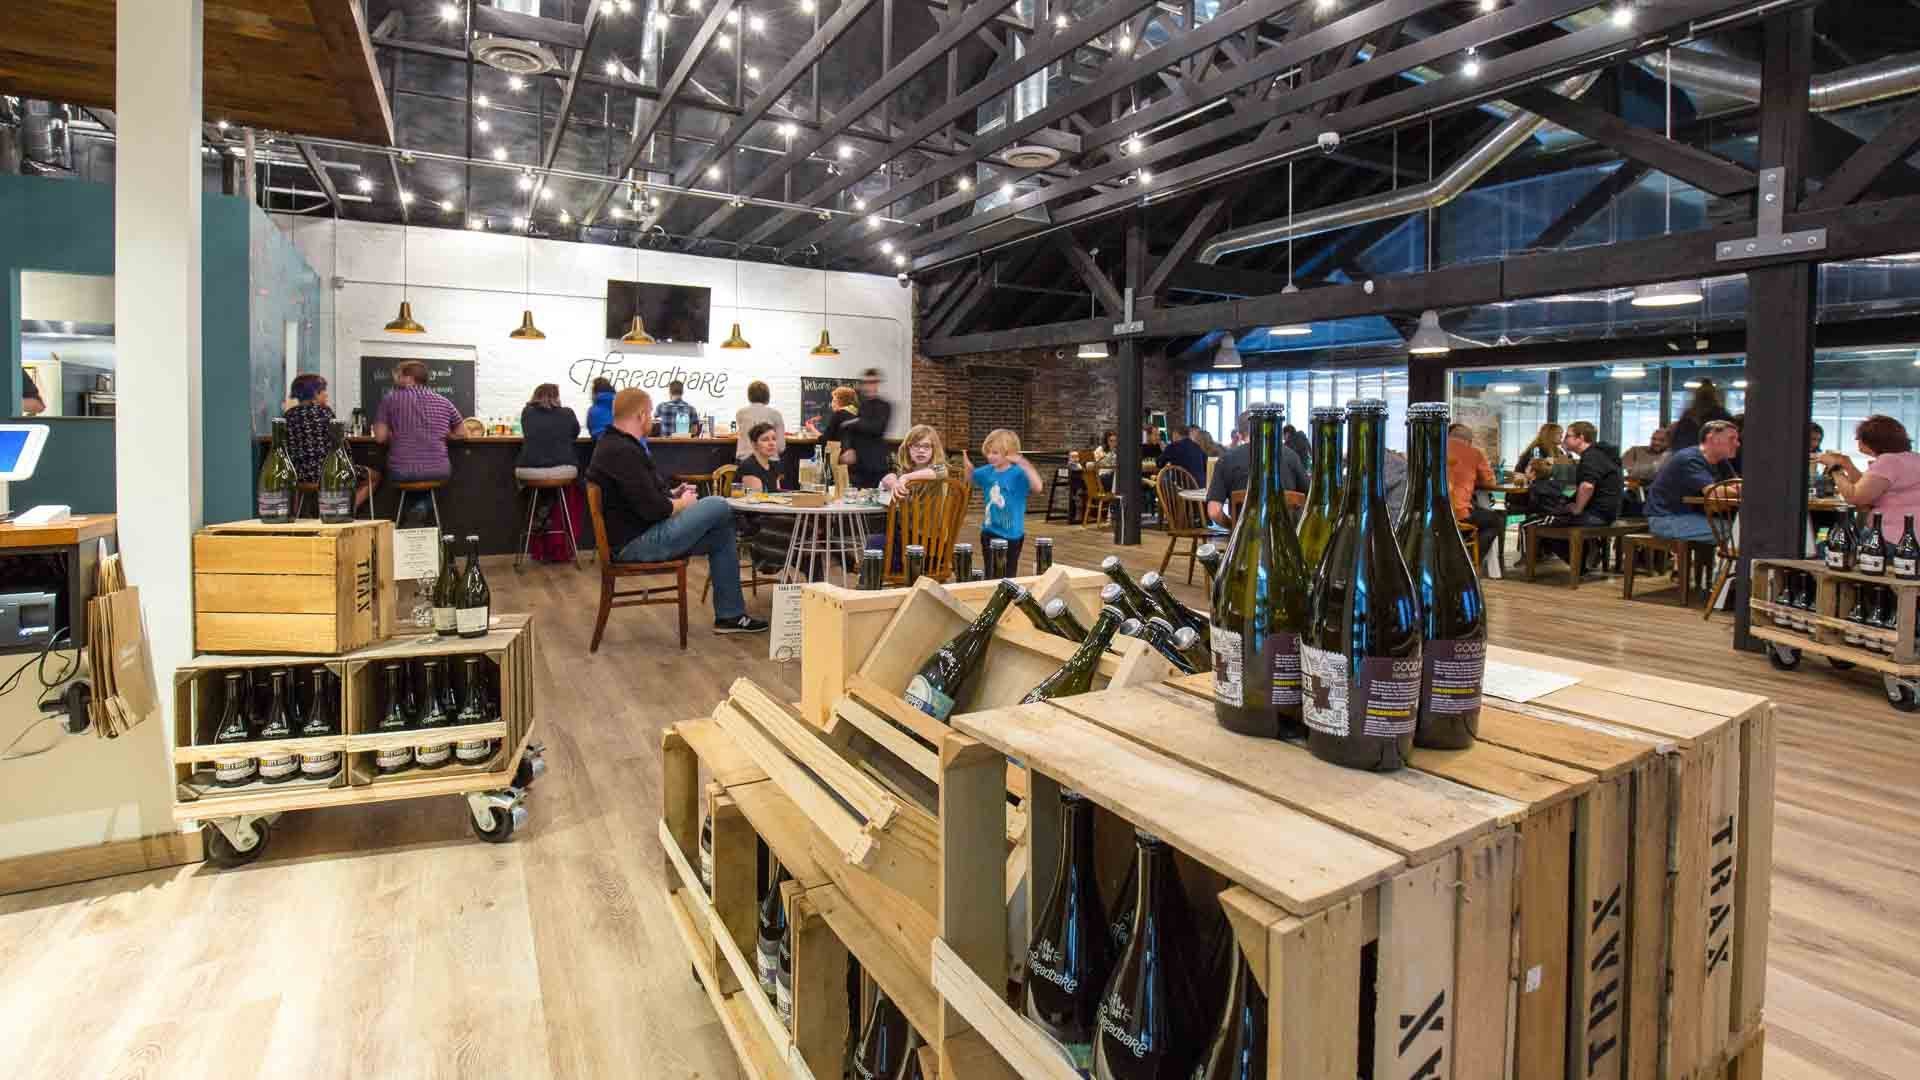 customers at tables and wine on display in Threadbare Cider & Mead